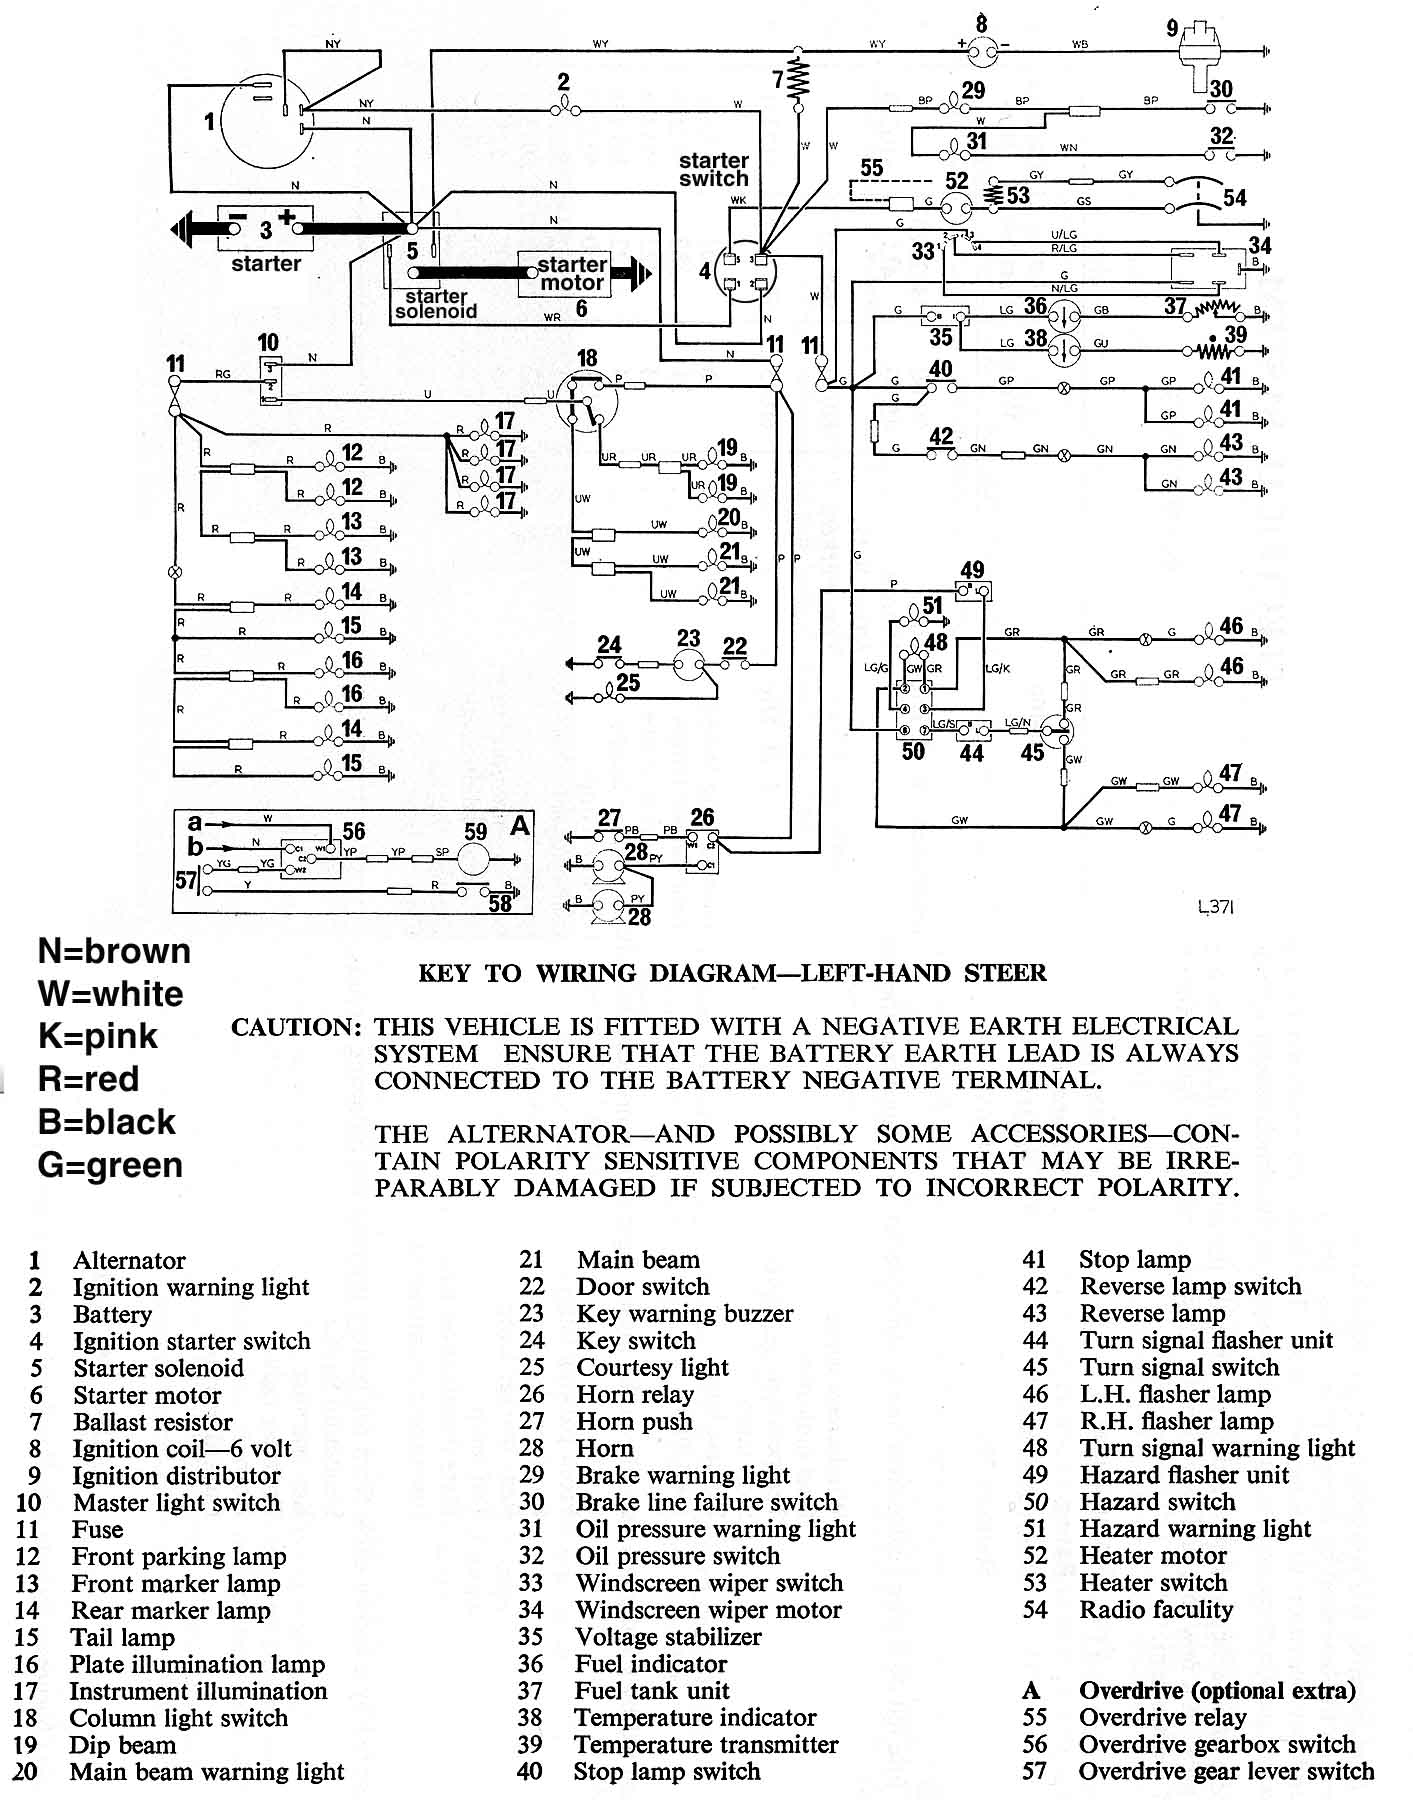 12v Ignition Wiring Diagram in addition Wiring Diagram For 1976 Mg Midget as well Toyota Alternator Wiring Diagram together with Rolls Royce Silver Shadow Wiring Diagram also 74 Mgb Wiring Diagram. on 1974 mgb starter wiring diagram